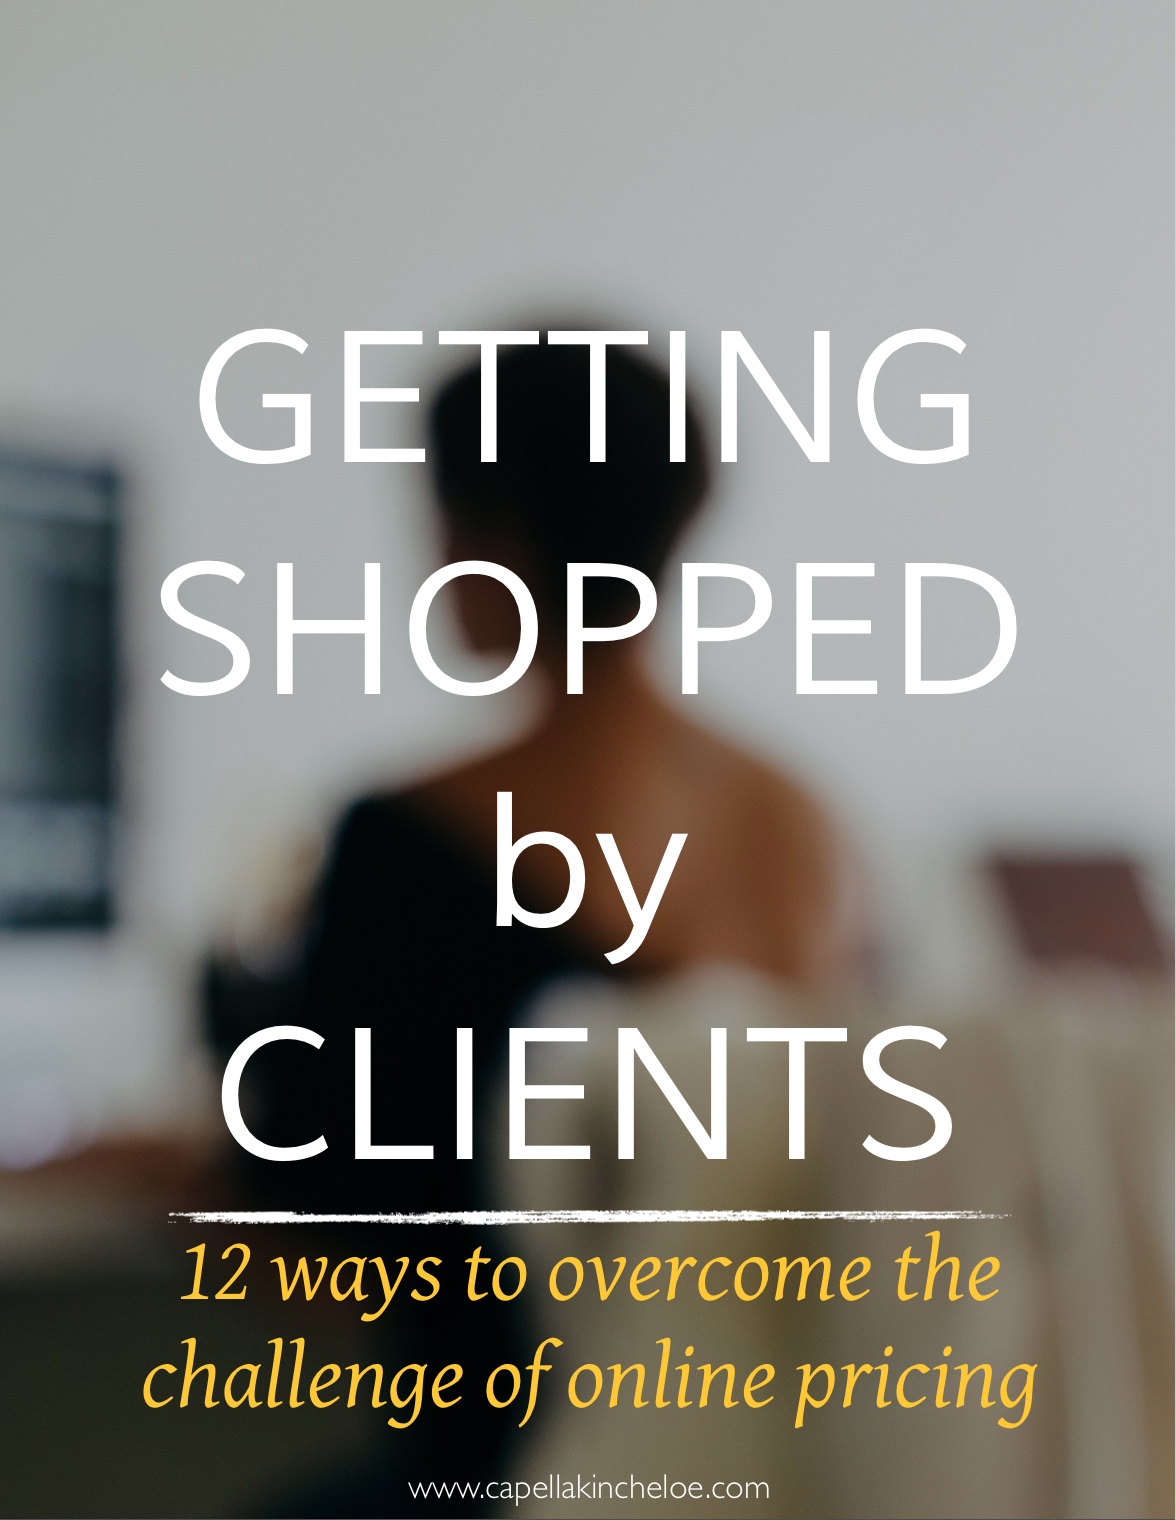 There is pricing all over the internet, learn how to overcome the challenge of getting shopped by clients in your interior design business.